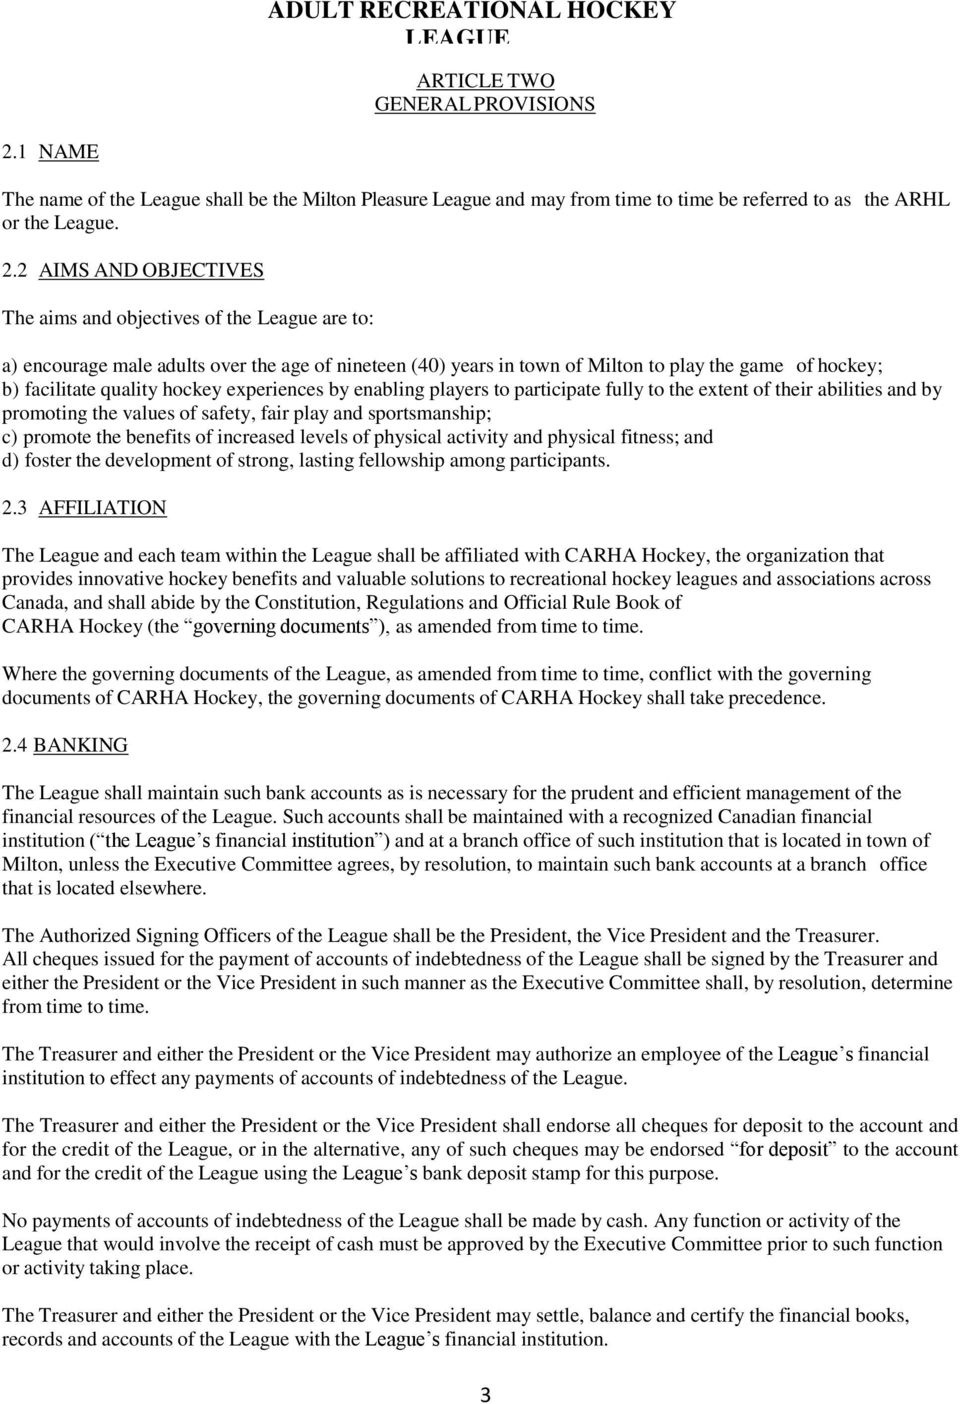 2 AIMS AND OBJECTIVES The aims and objectives of the League are to: a) encourage male adults over the age of nineteen (40) years in town of Milton to play the game of hockey; b) facilitate quality